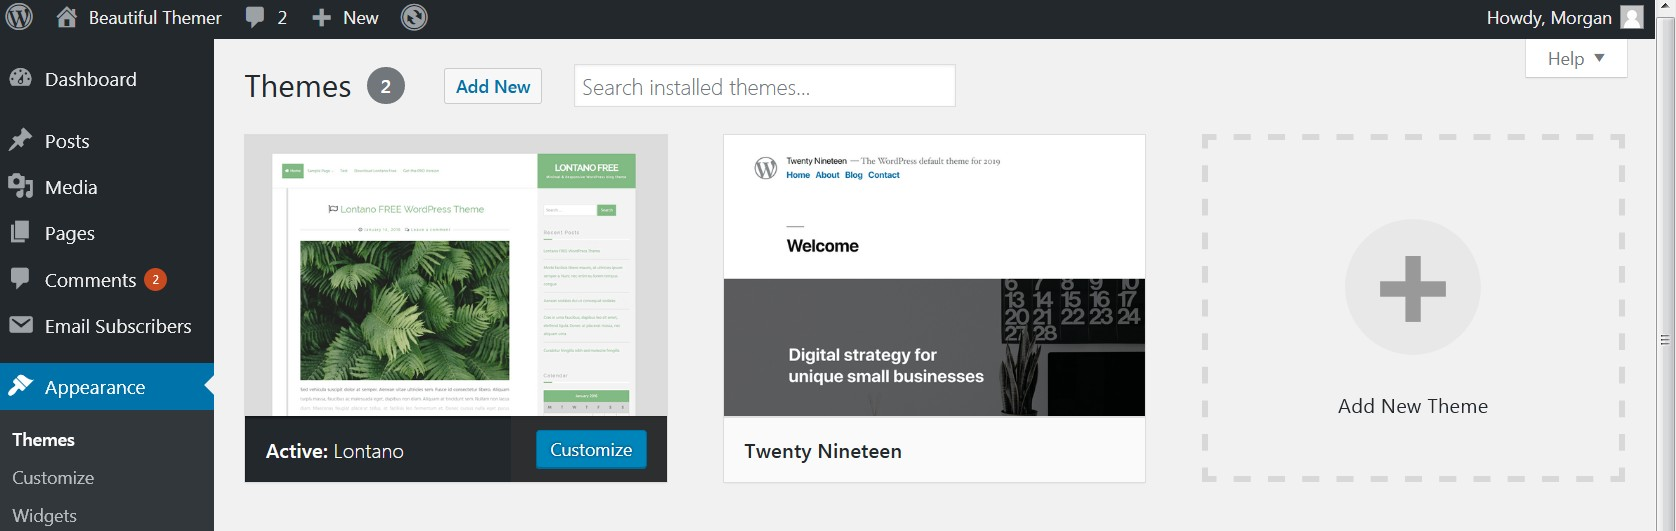 The WordPress Dashboard opemned to Appearance/Theme, showing themes already installed and the add new button and plus sign.